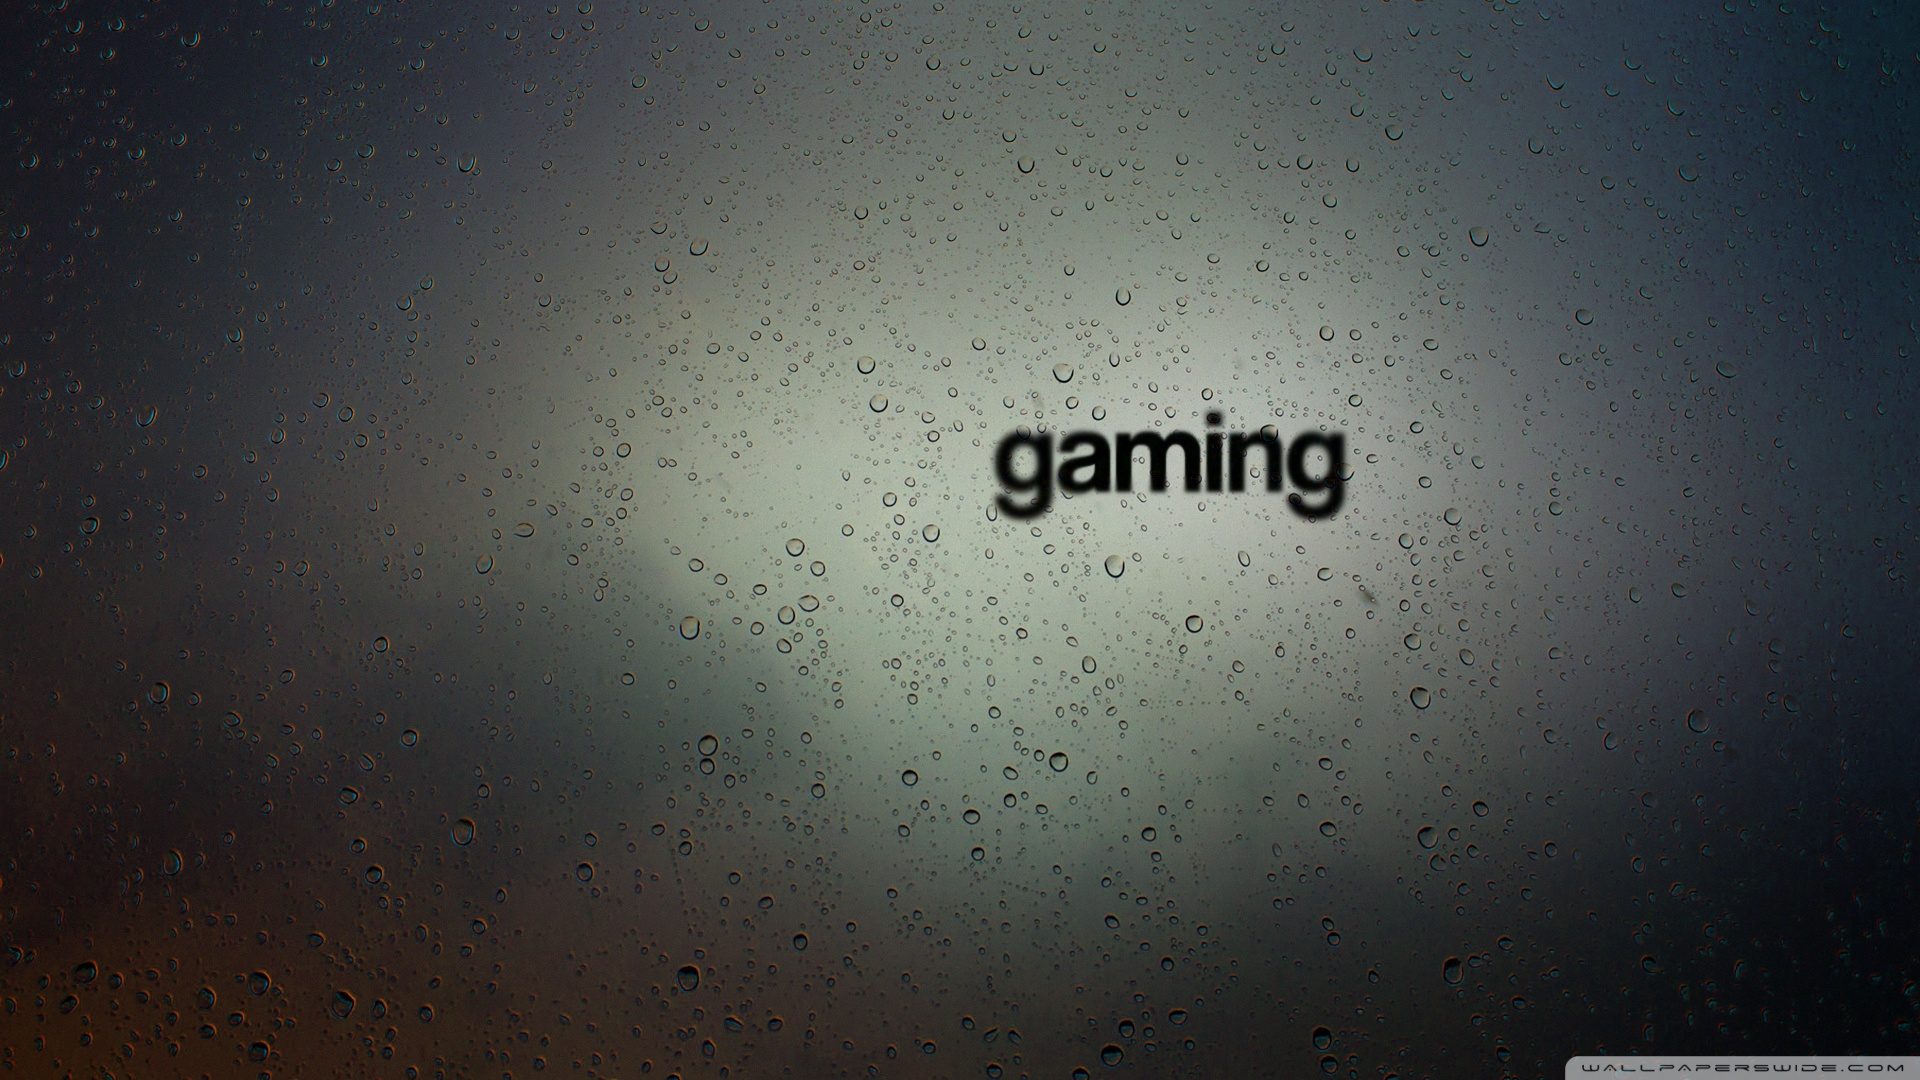 1920x1200 gaming wallpaper - photo #15